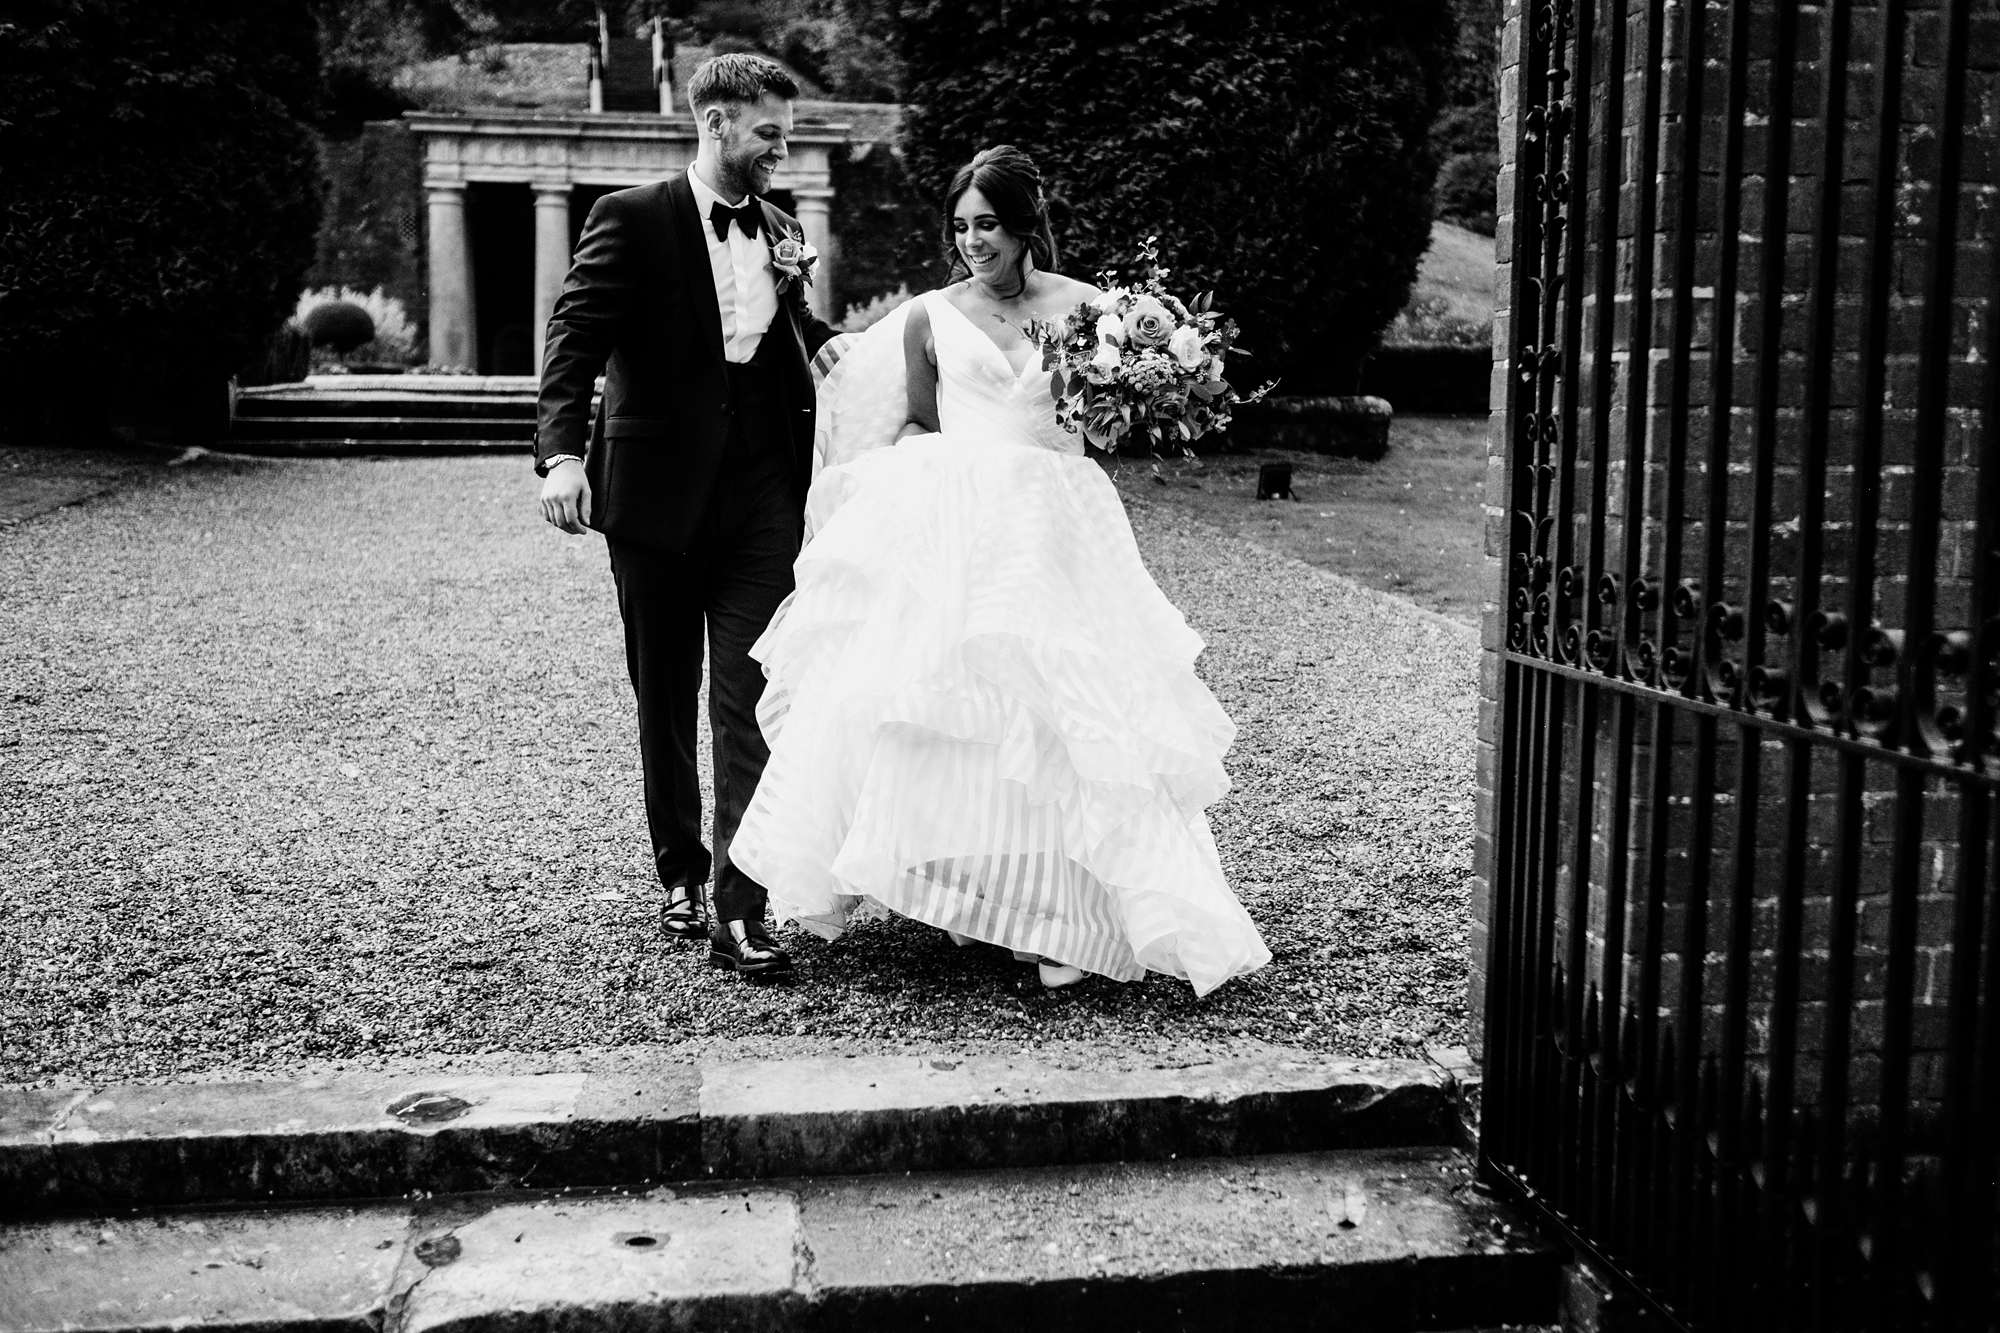 Wedding at Wotton House in Surrey